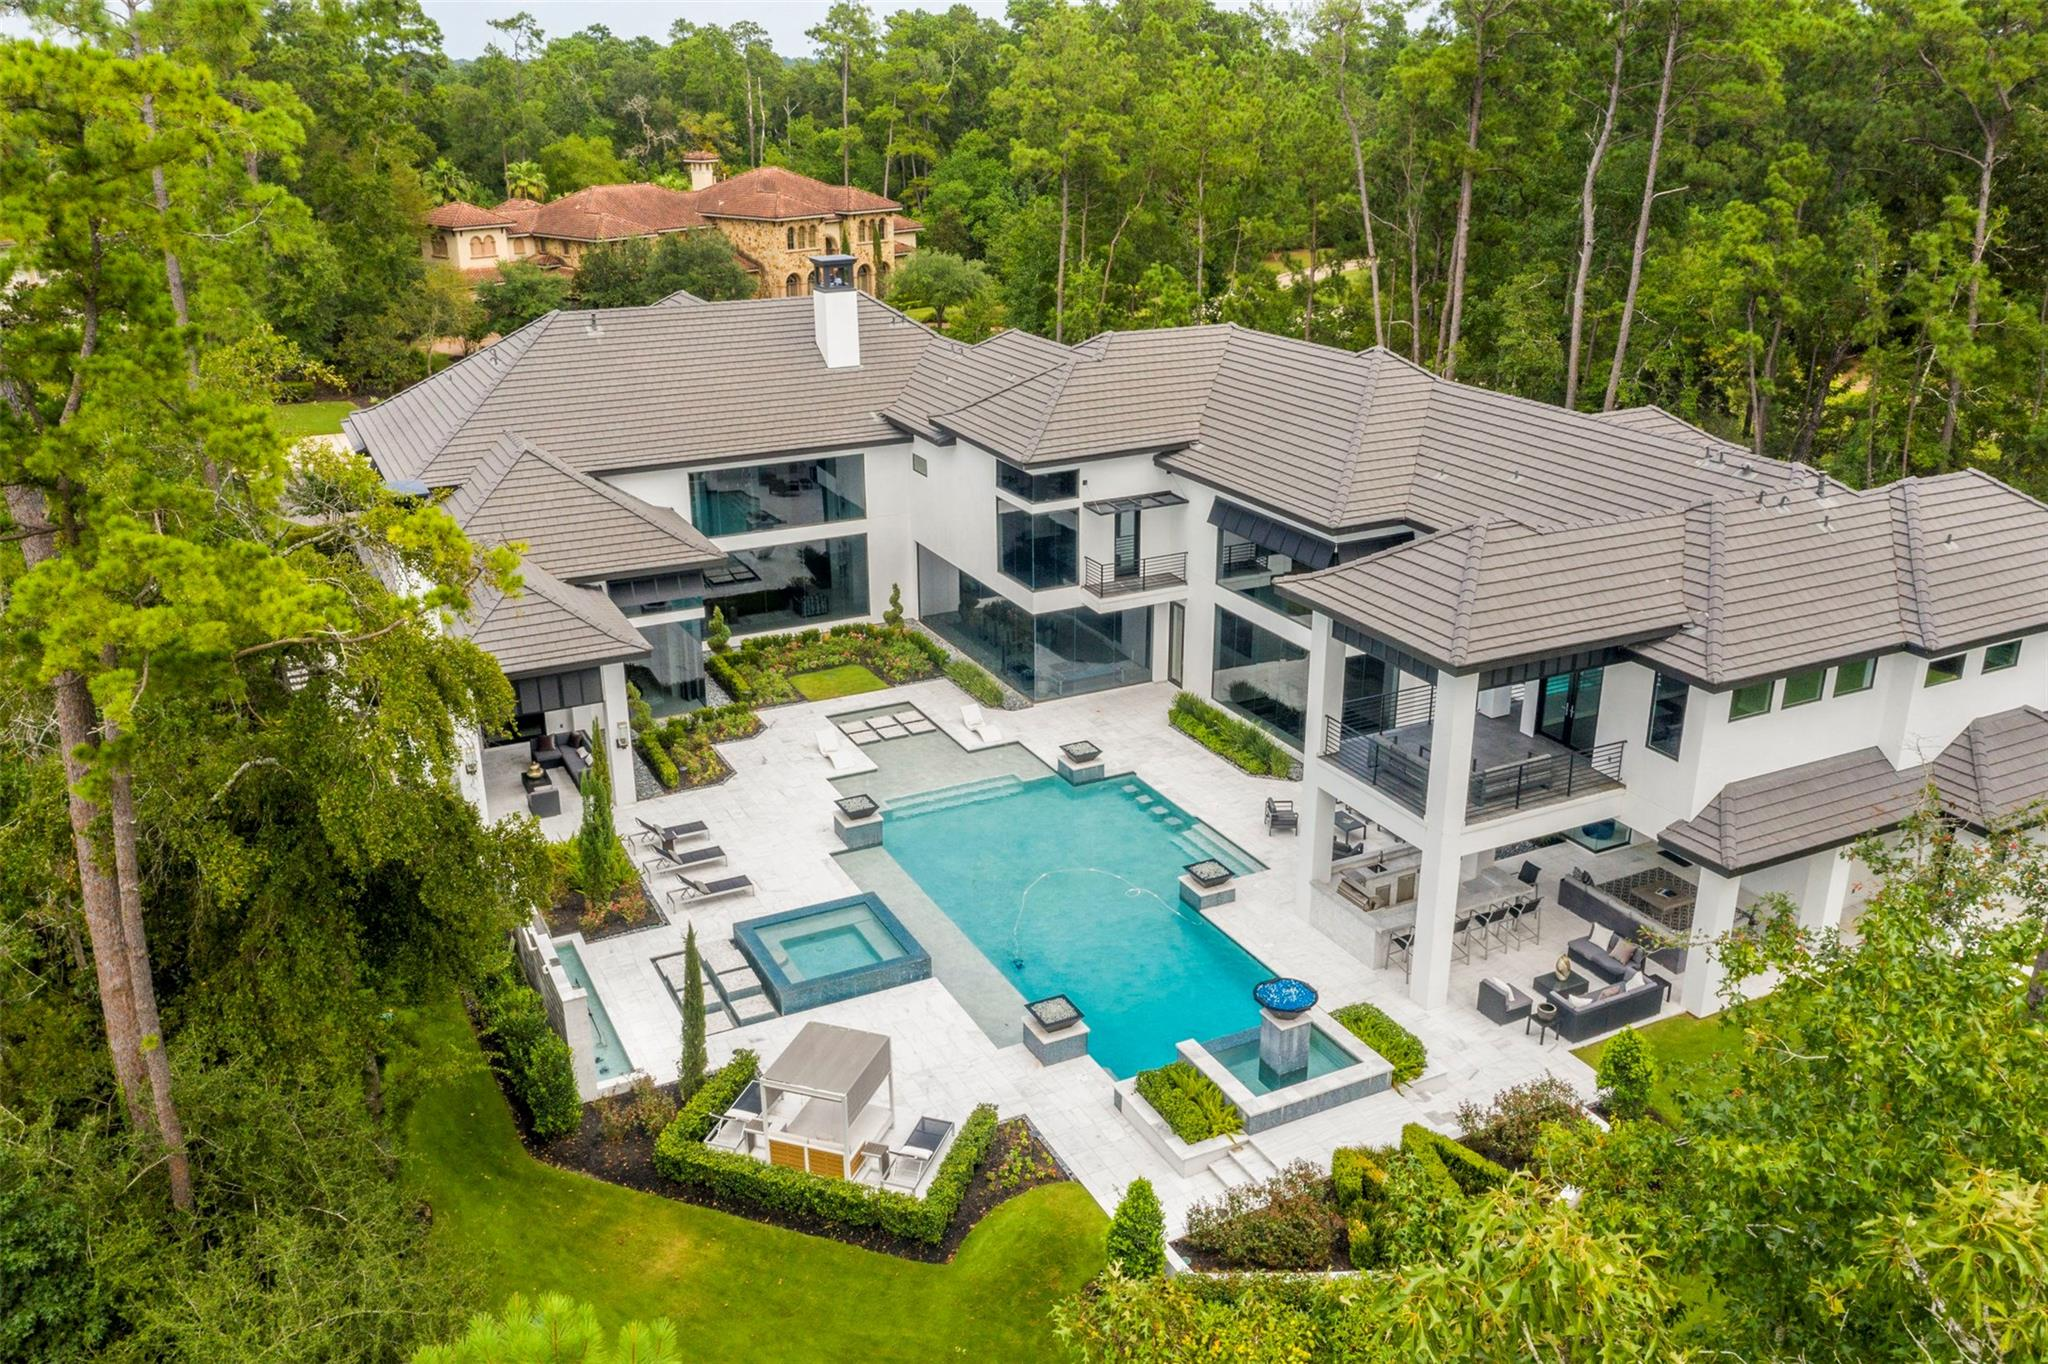 34 N Fazio Way Property Photo - The Woodlands, TX real estate listing